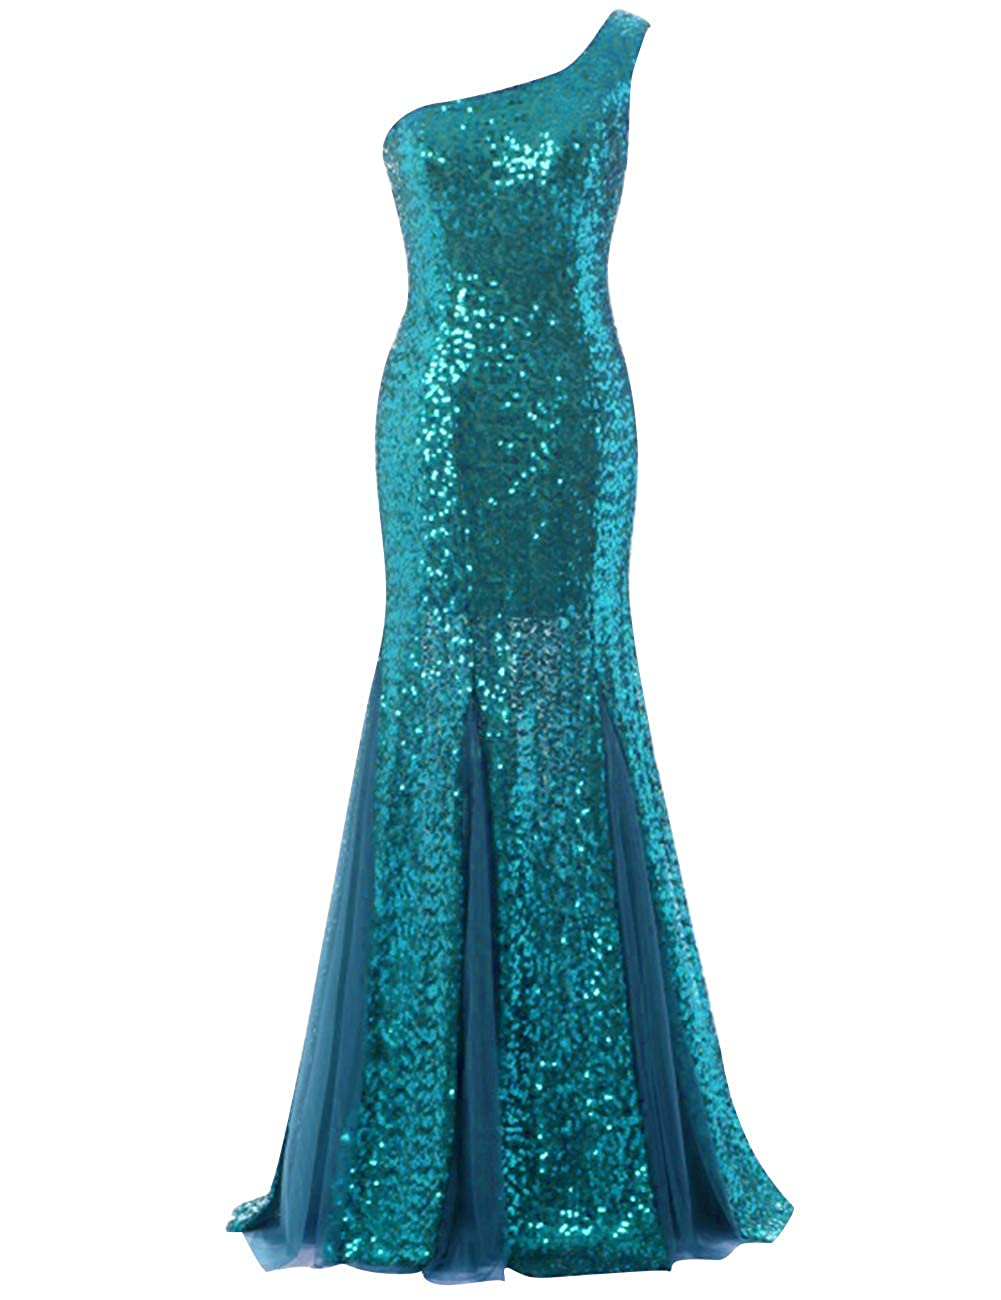 Women Sparkly Sequins Prom Evening Gown Long One Shoulder Bridesmaid Dress Turquoise US14